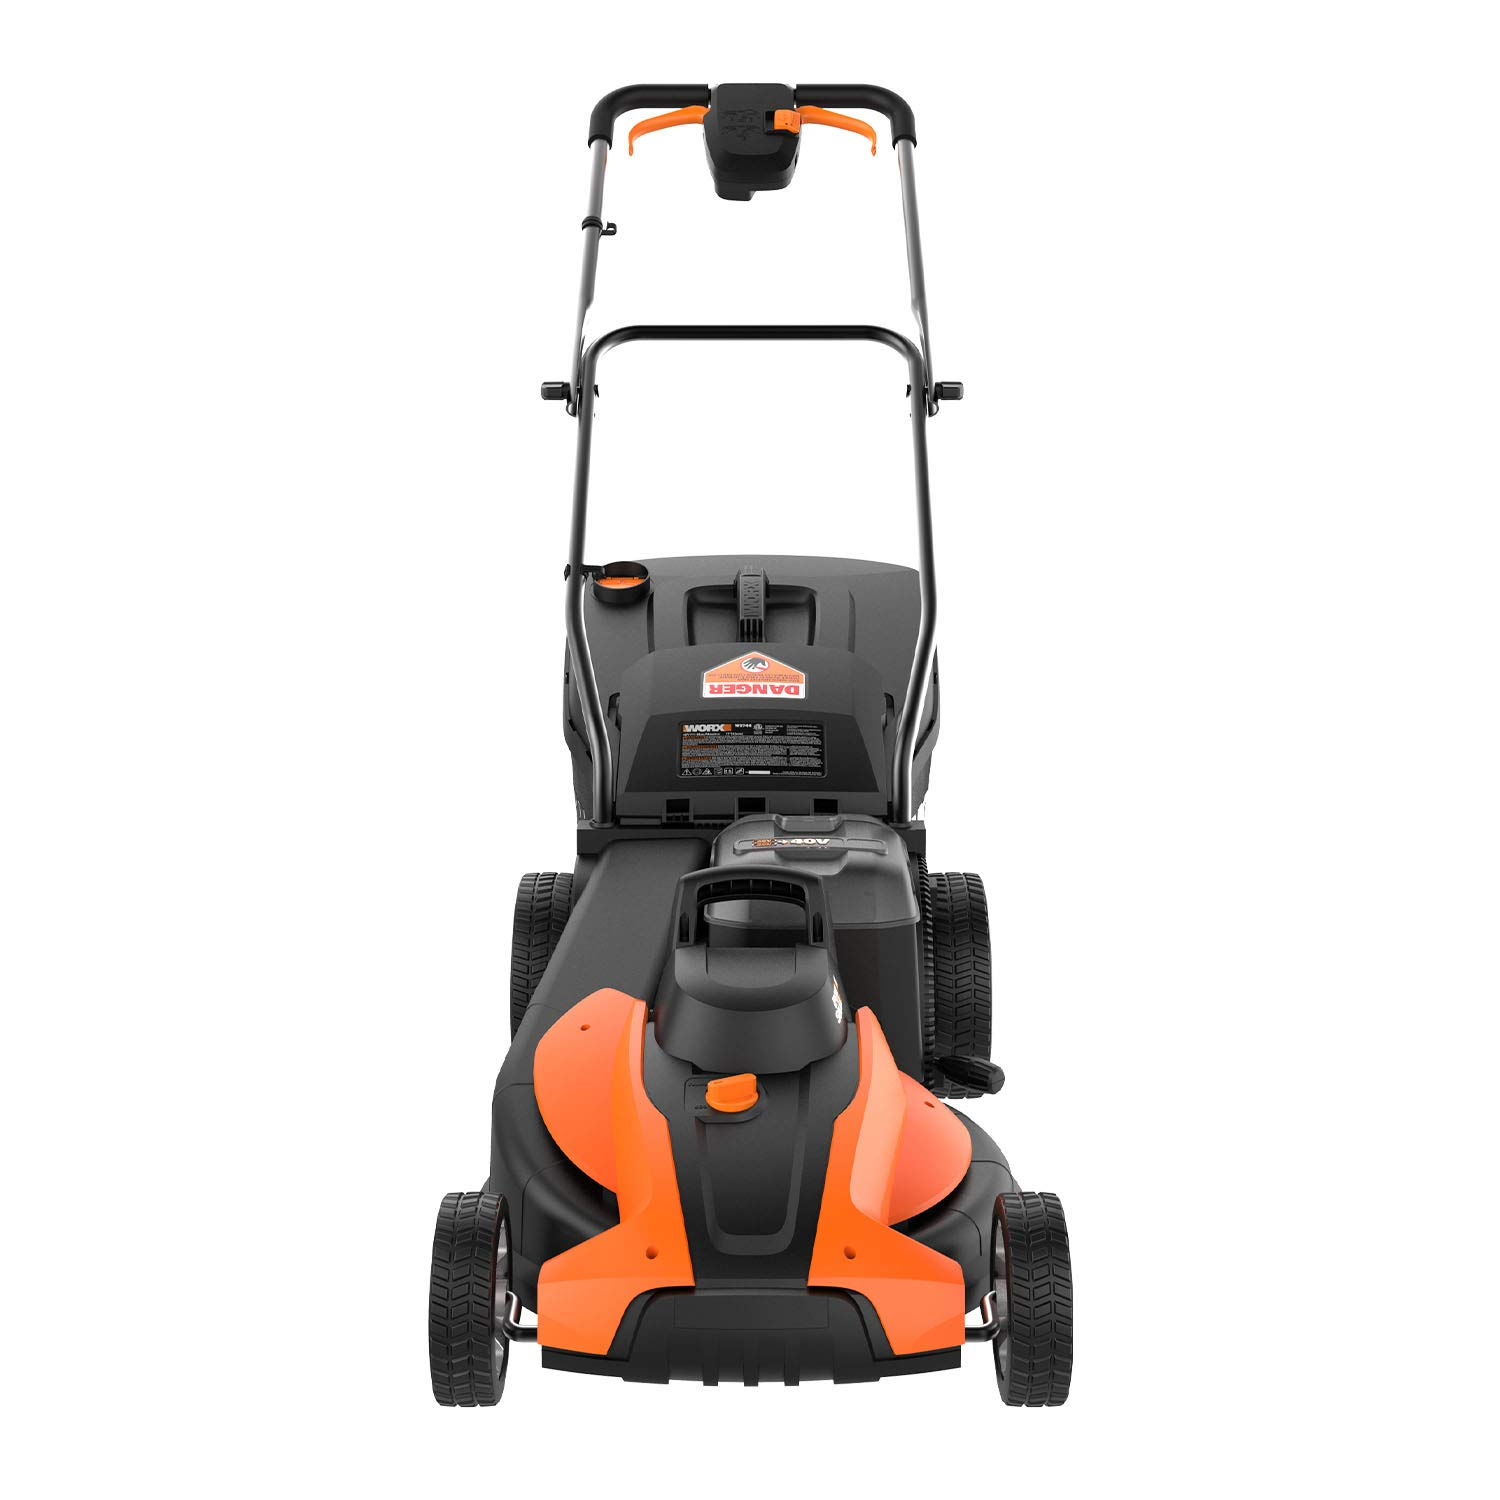 WORX WG744 40V Power Share 4.0 Ah 17 Lawn Mower w Mulching 2x20V Batteries